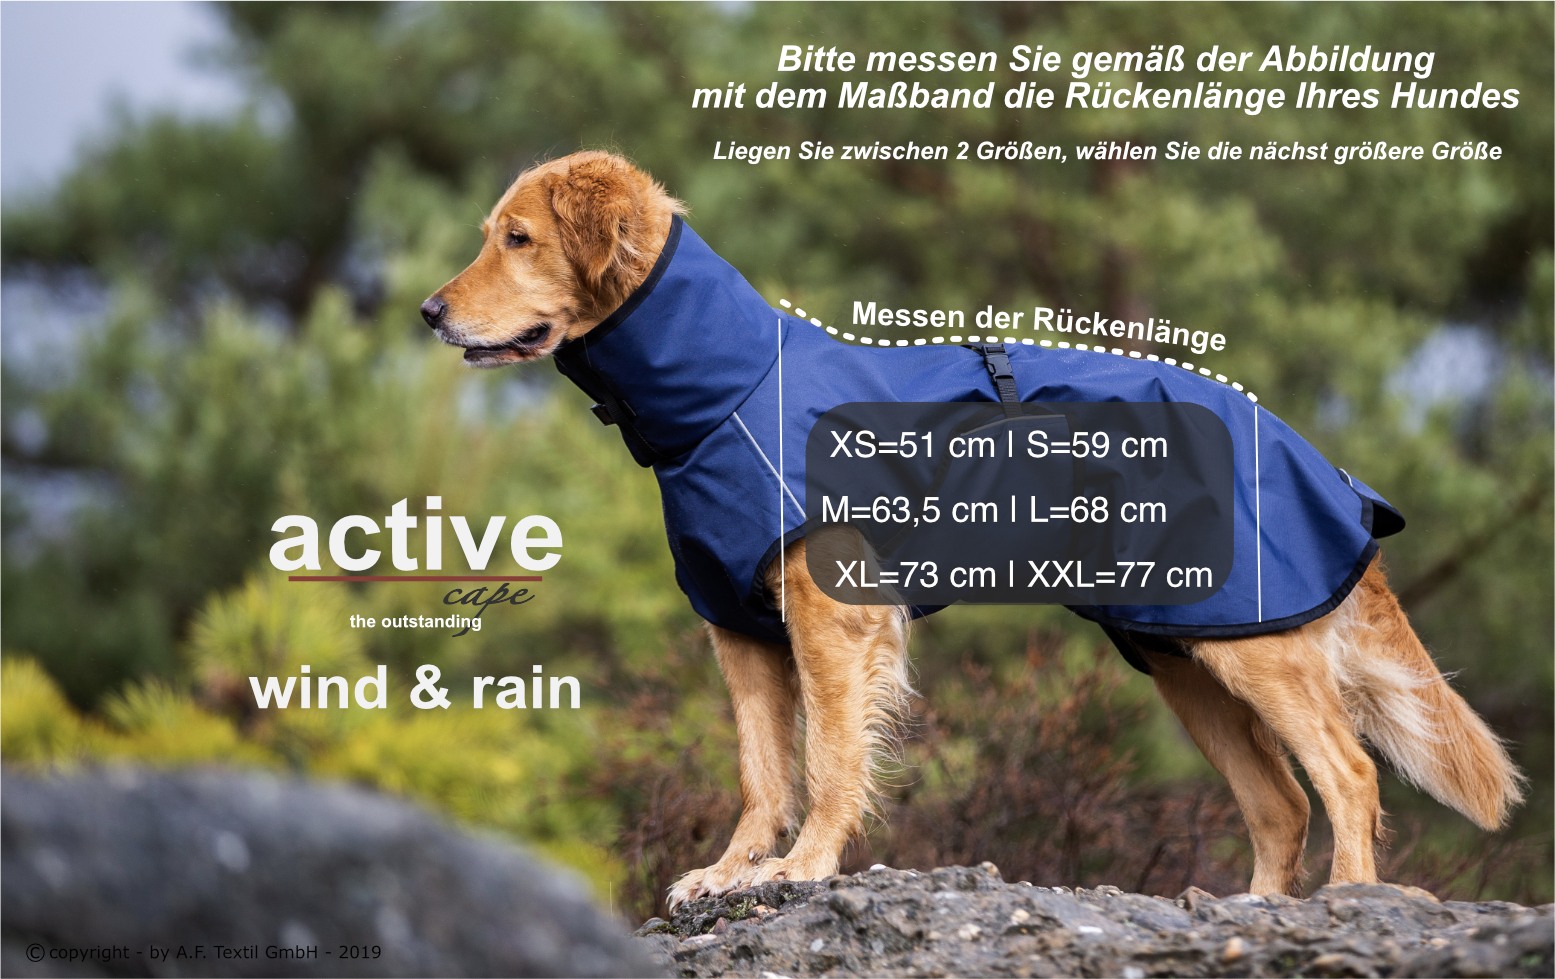 wind-rain-grossenfindung-deutsch